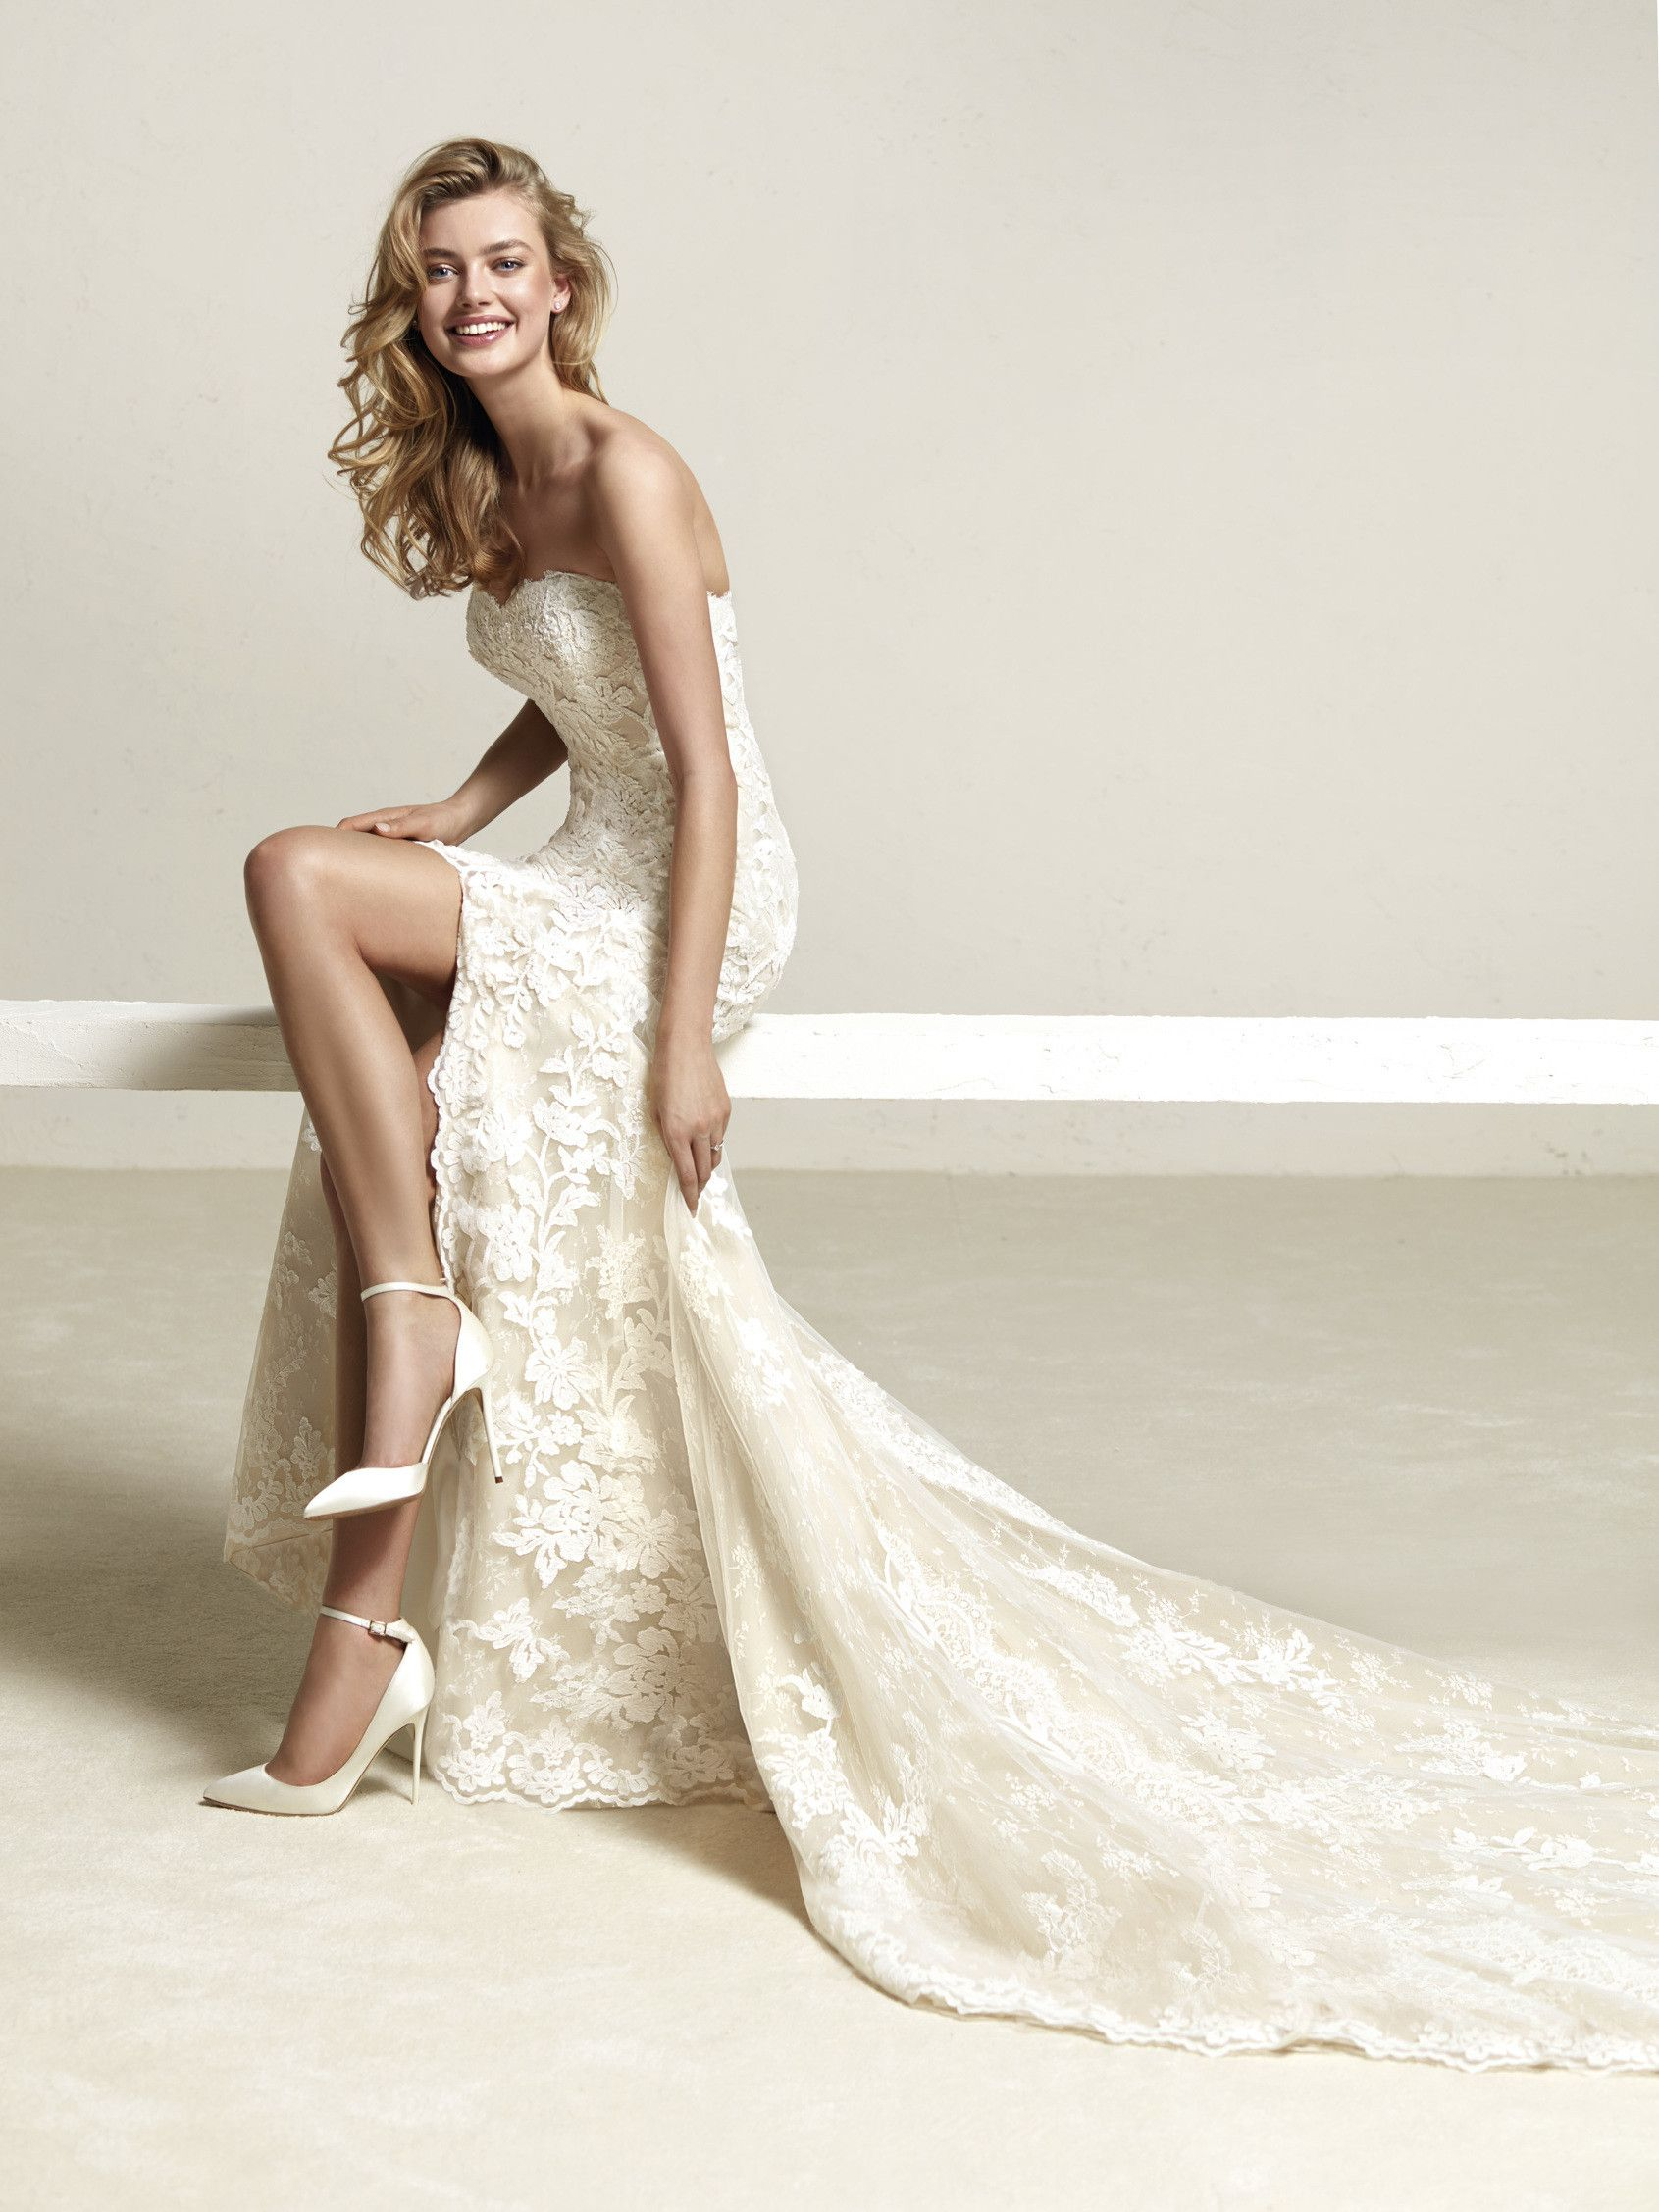 Wedding dress full skirt and lace | Wedding - Brautkleid | Pinterest ...